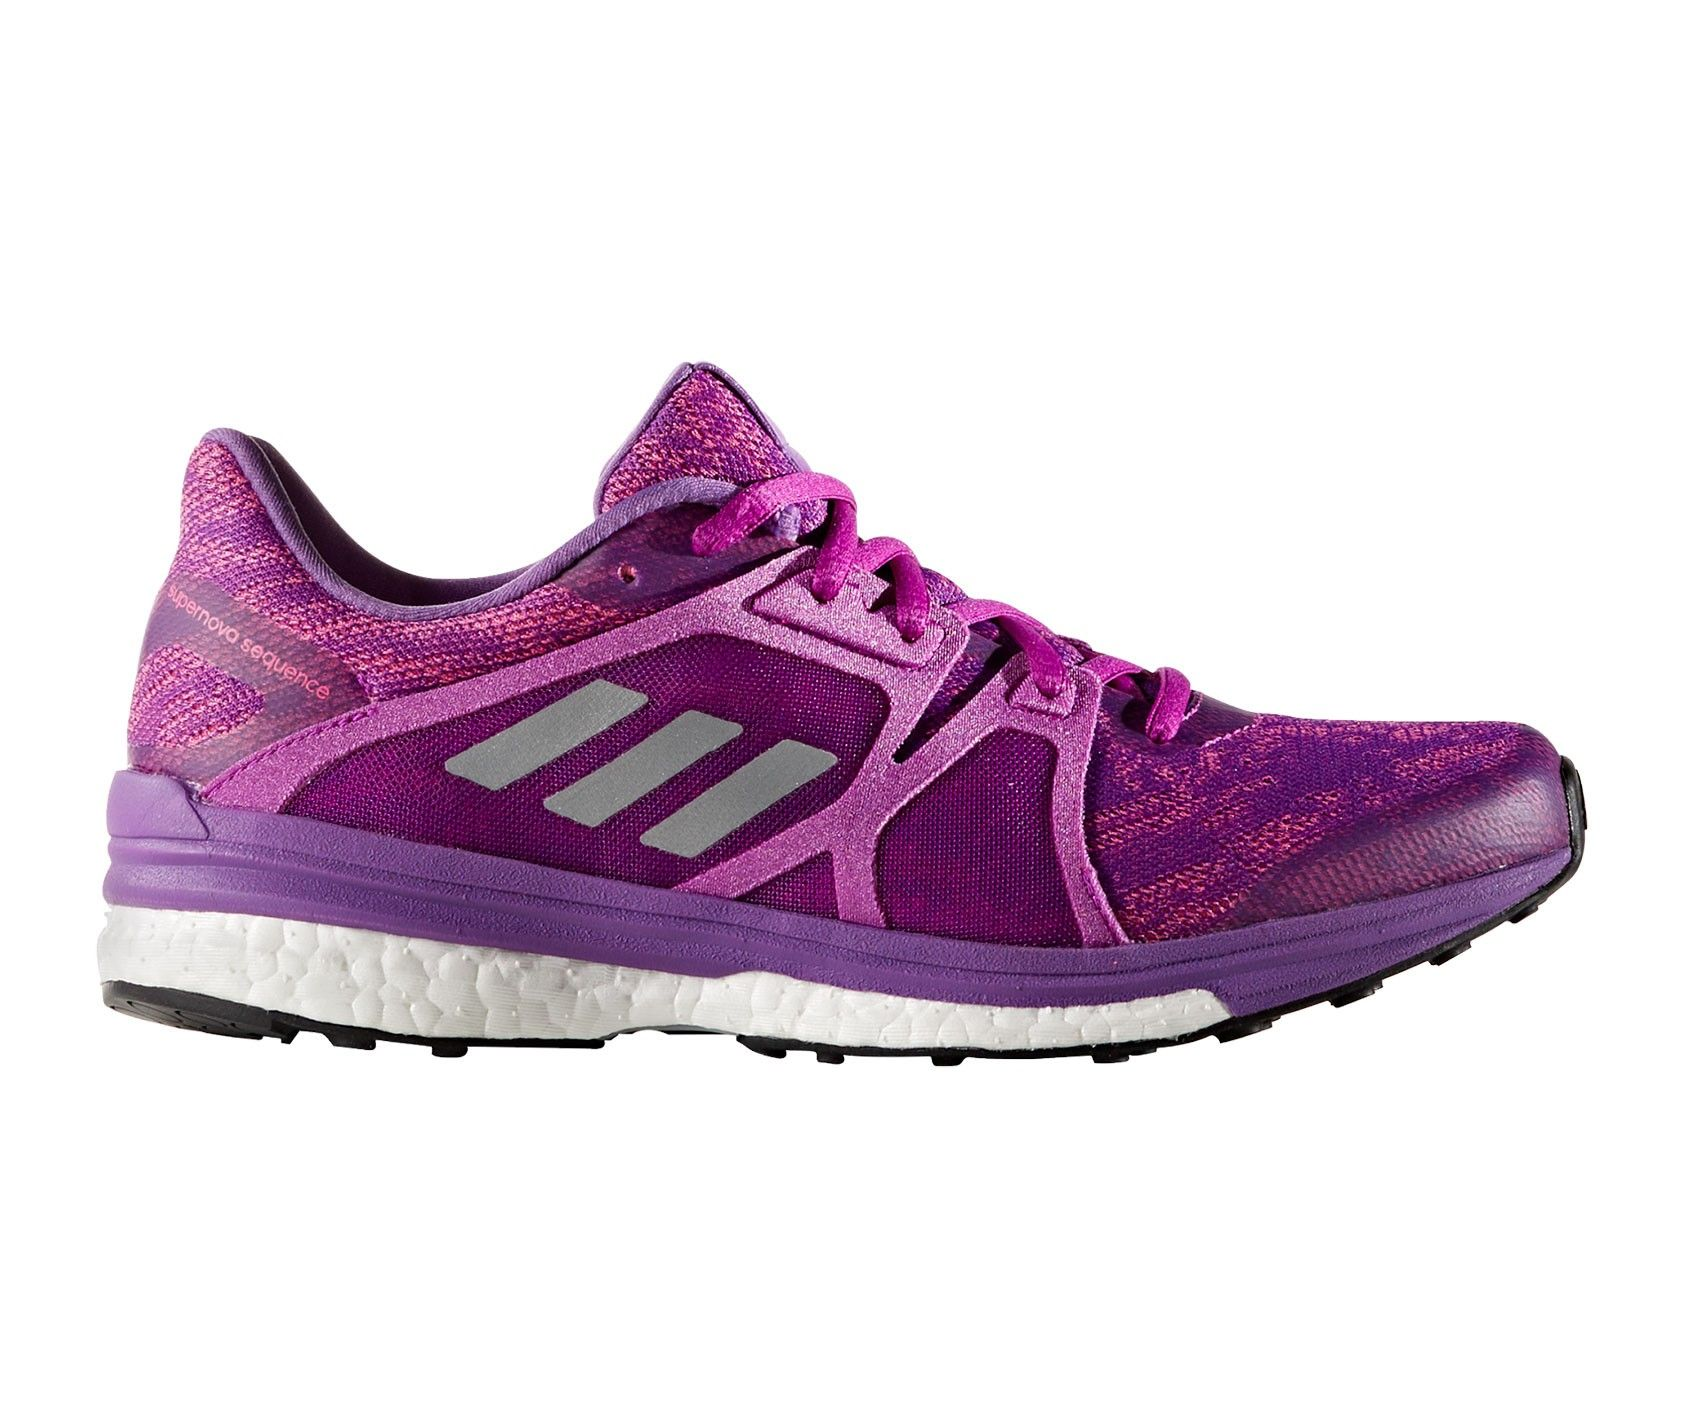 ADIDAS SUPERNOVA SEQUENCE BOOST 9 VIOLETA MUJER